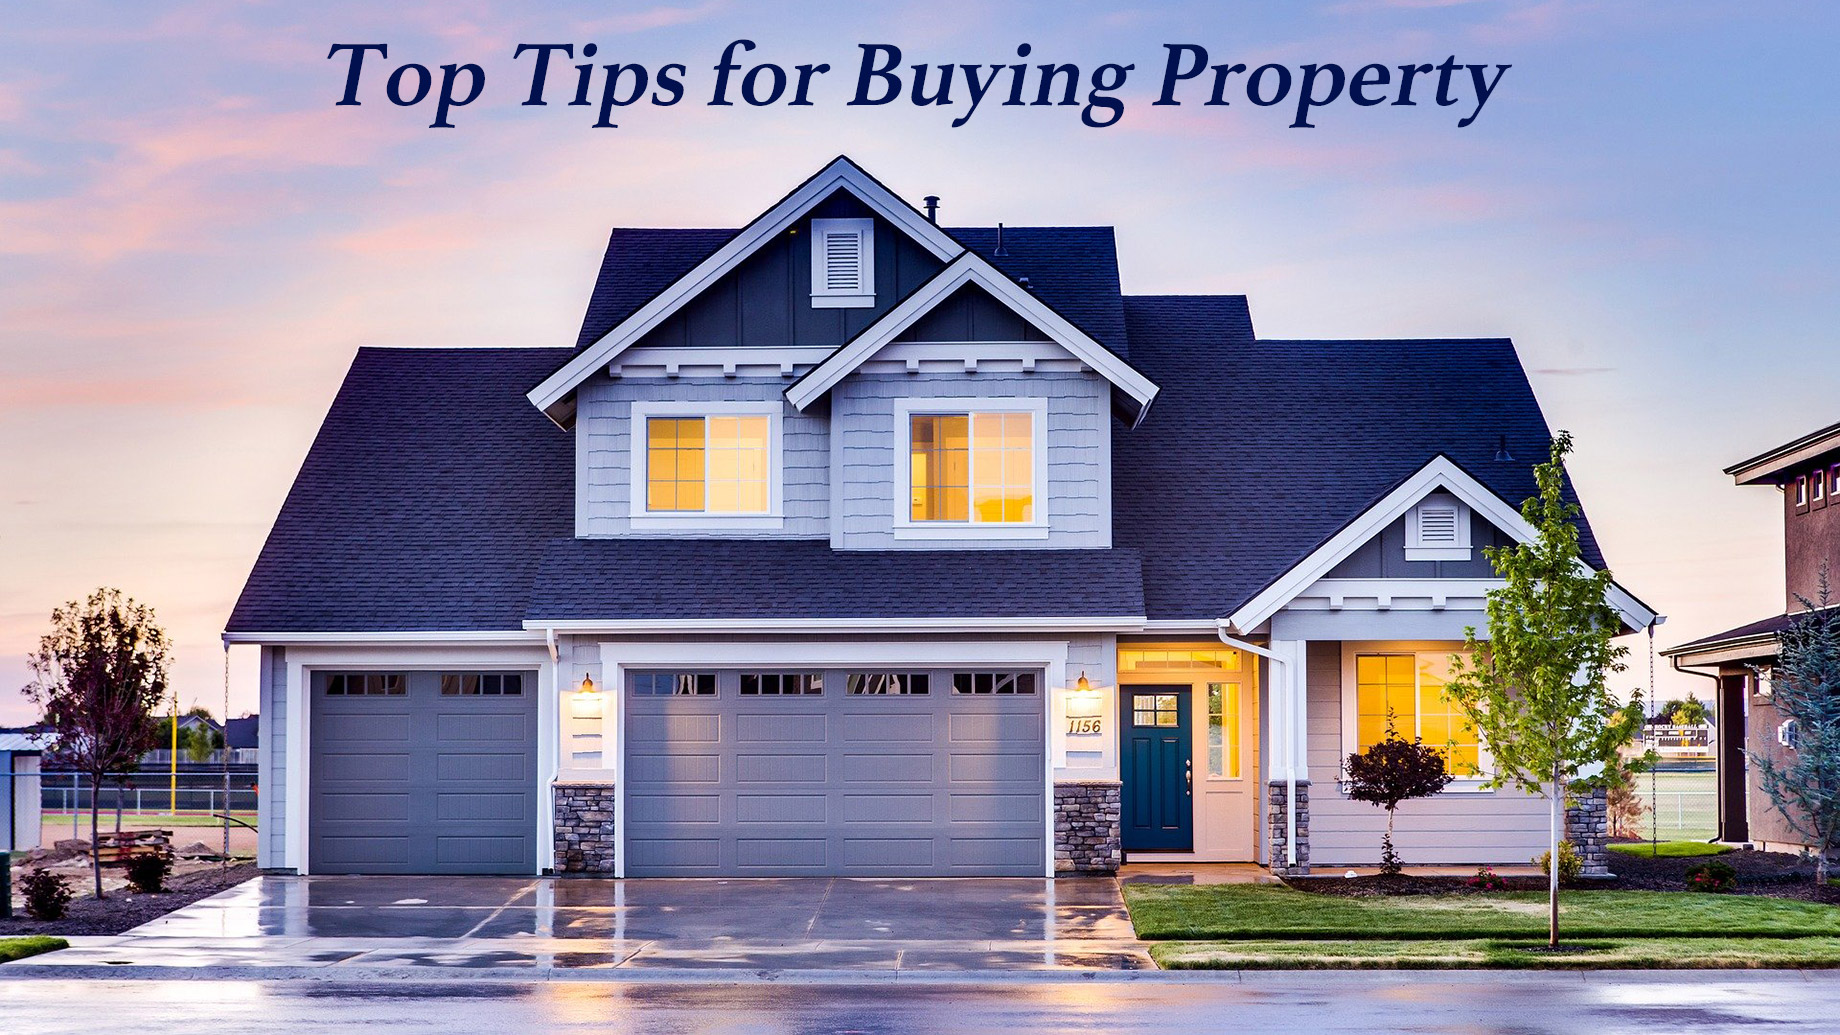 Top Tips for Buying Property